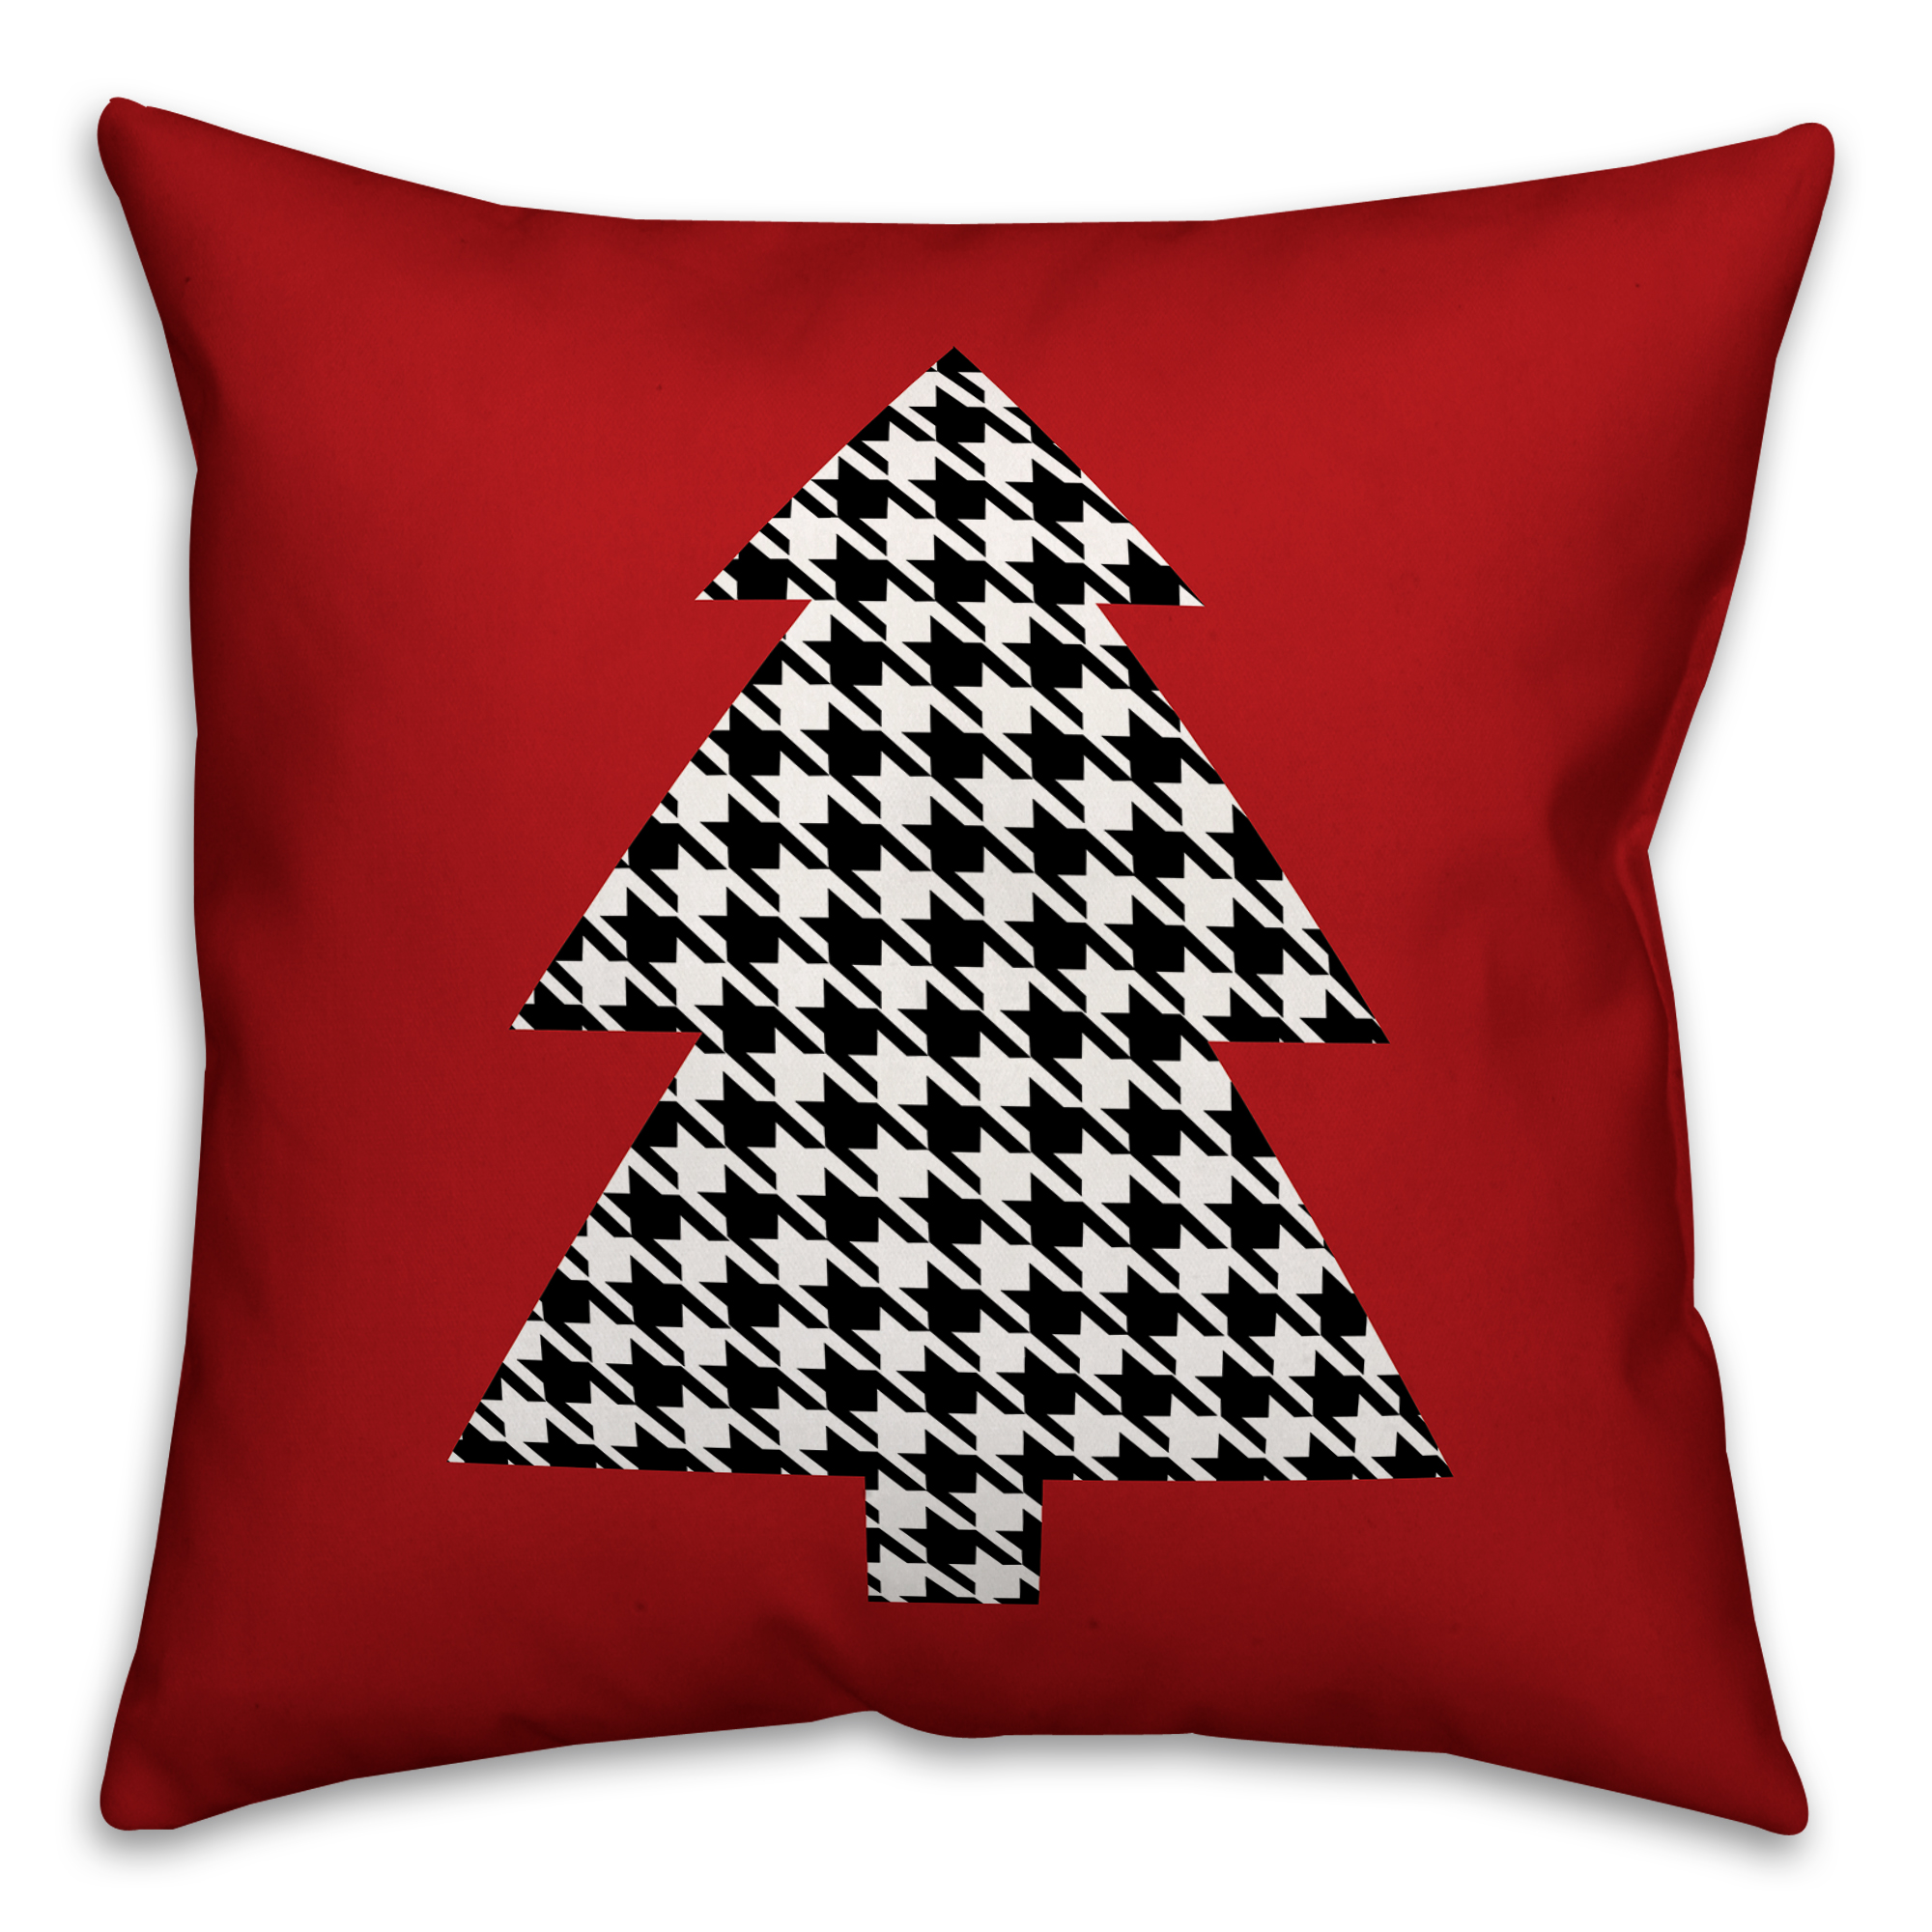 Houndstooth Christmas Tree 20x20 Spun Poly Pillow Cover